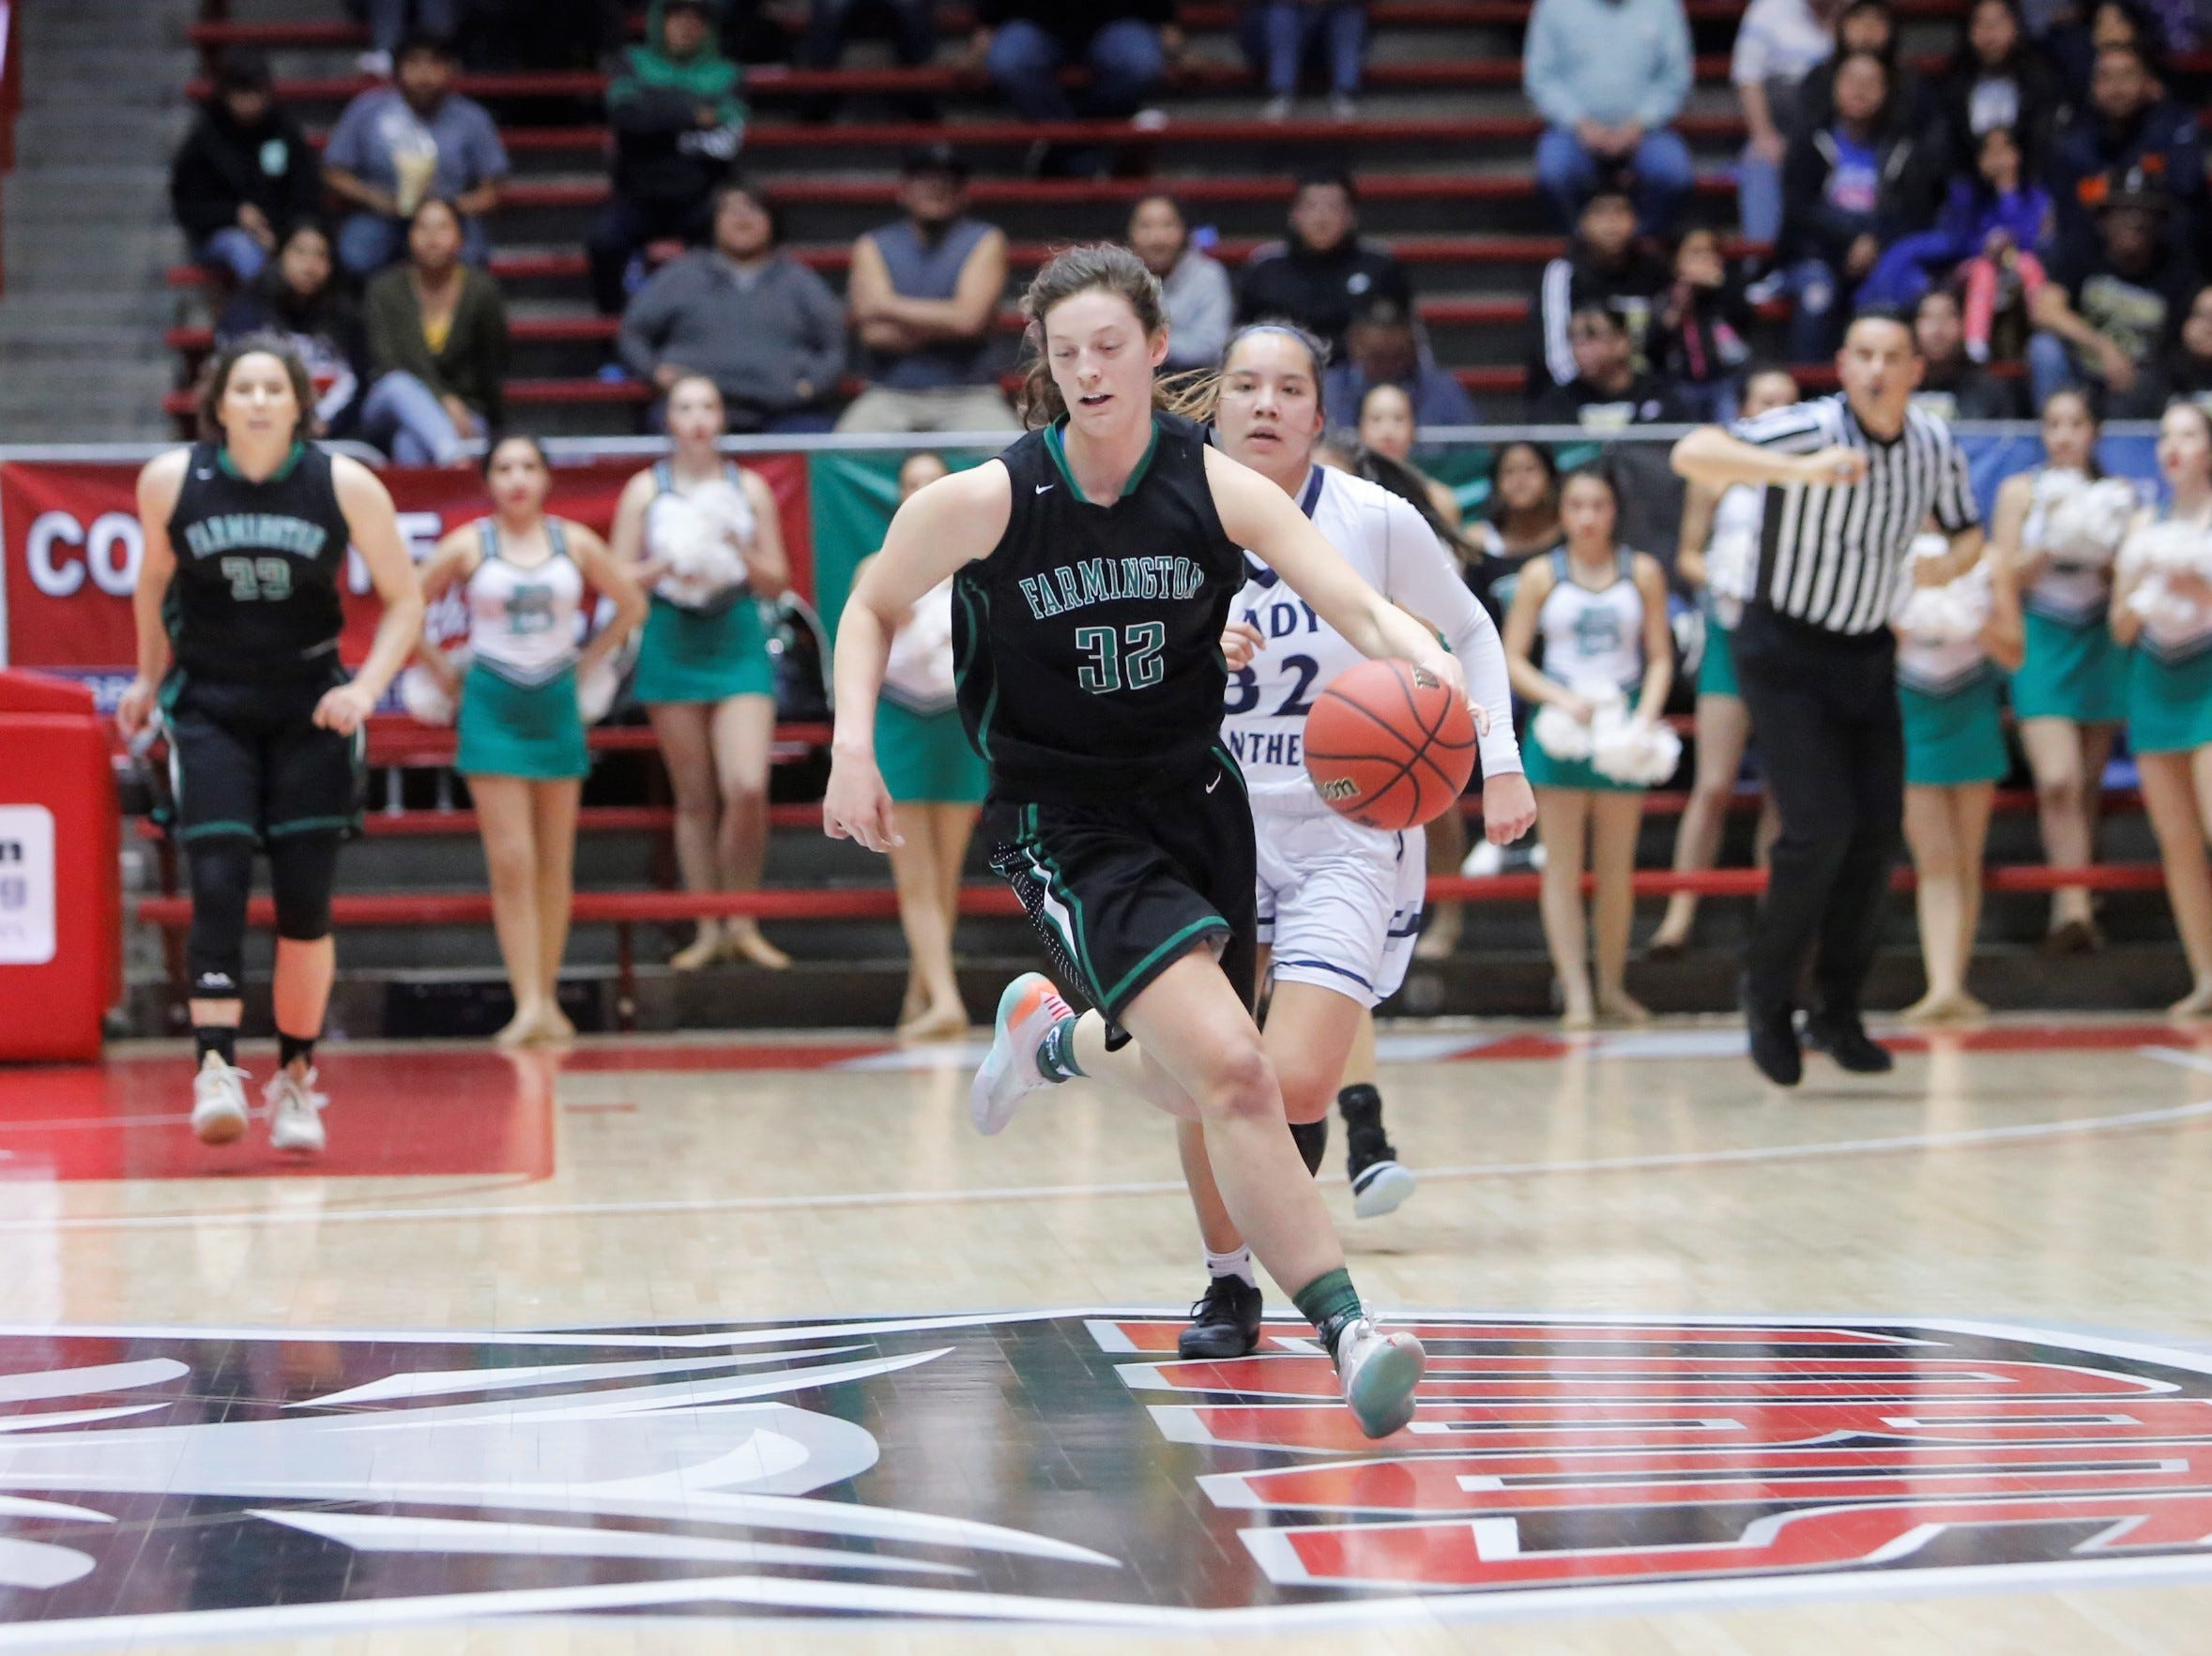 Farmington's Jordan Vasquez drives down the floor on the fast break against Piedra Vista during Tuesday's 4A state quarterfinals game at Dreamstyle Arena in Albuquerque.